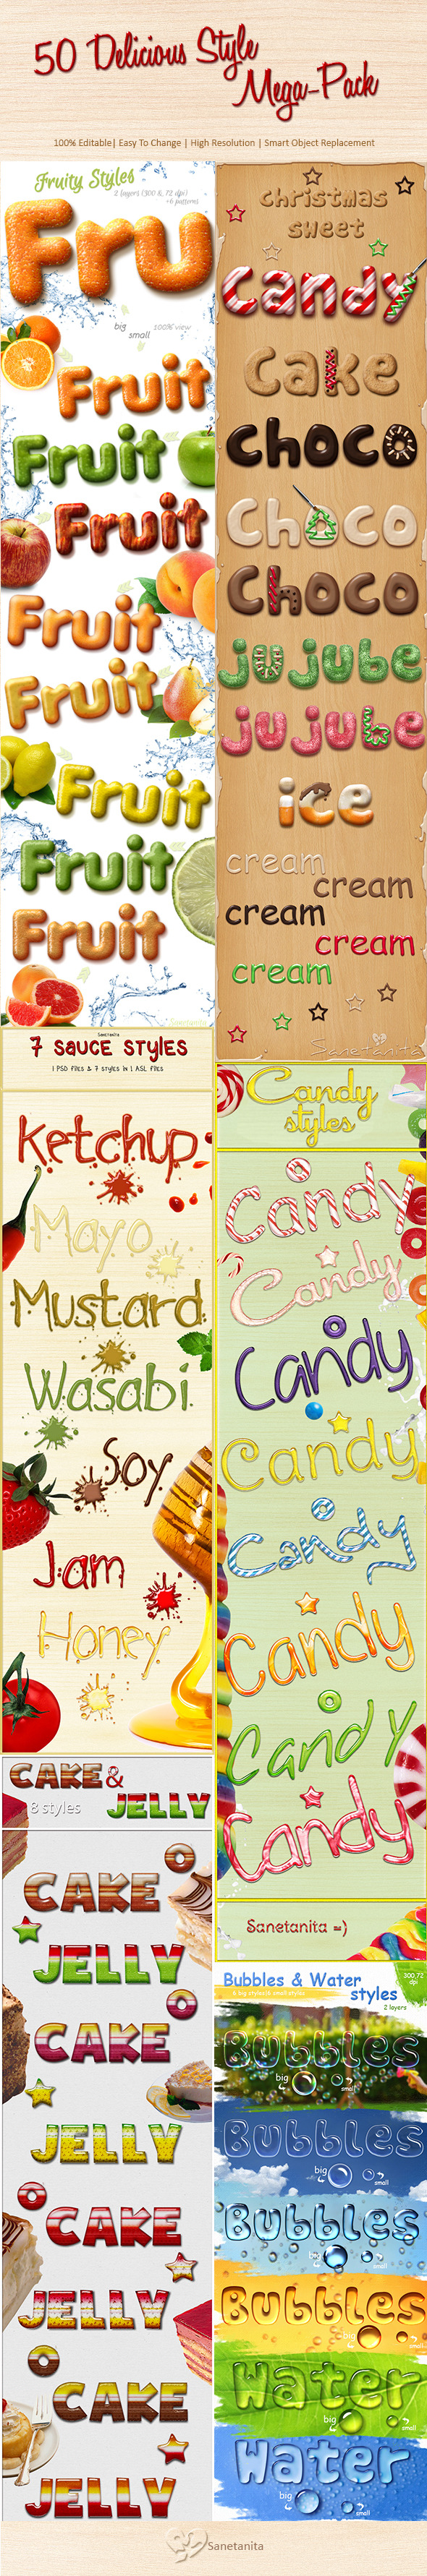 GraphicRiver 50 Delicious Style Mega-Pack 11640743